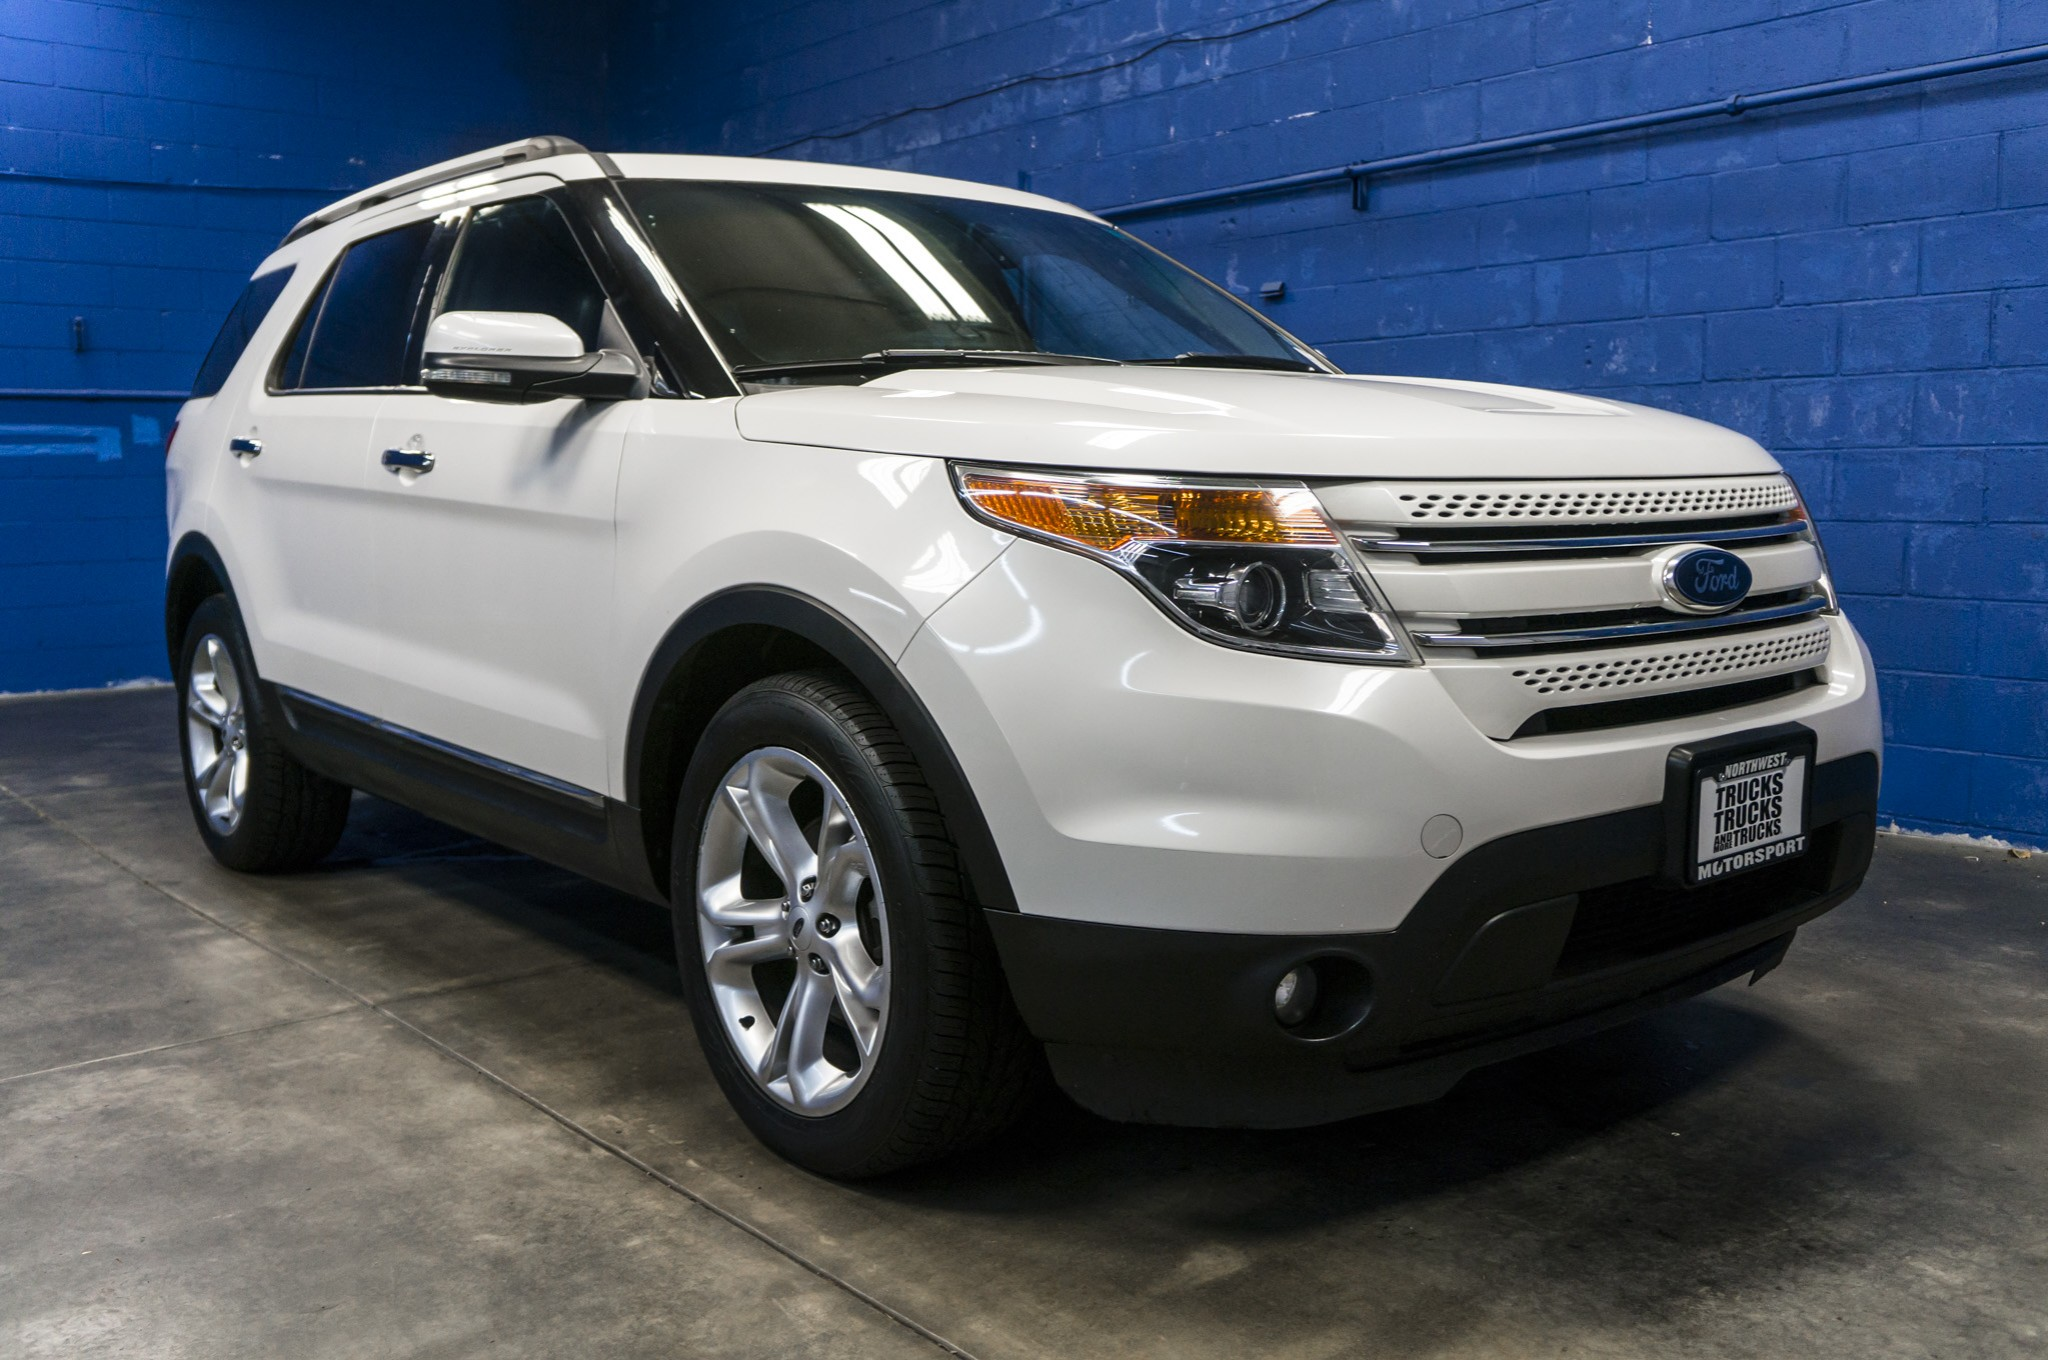 Used 2012 Ford Explorer Limited 4x4 SUV For Sale